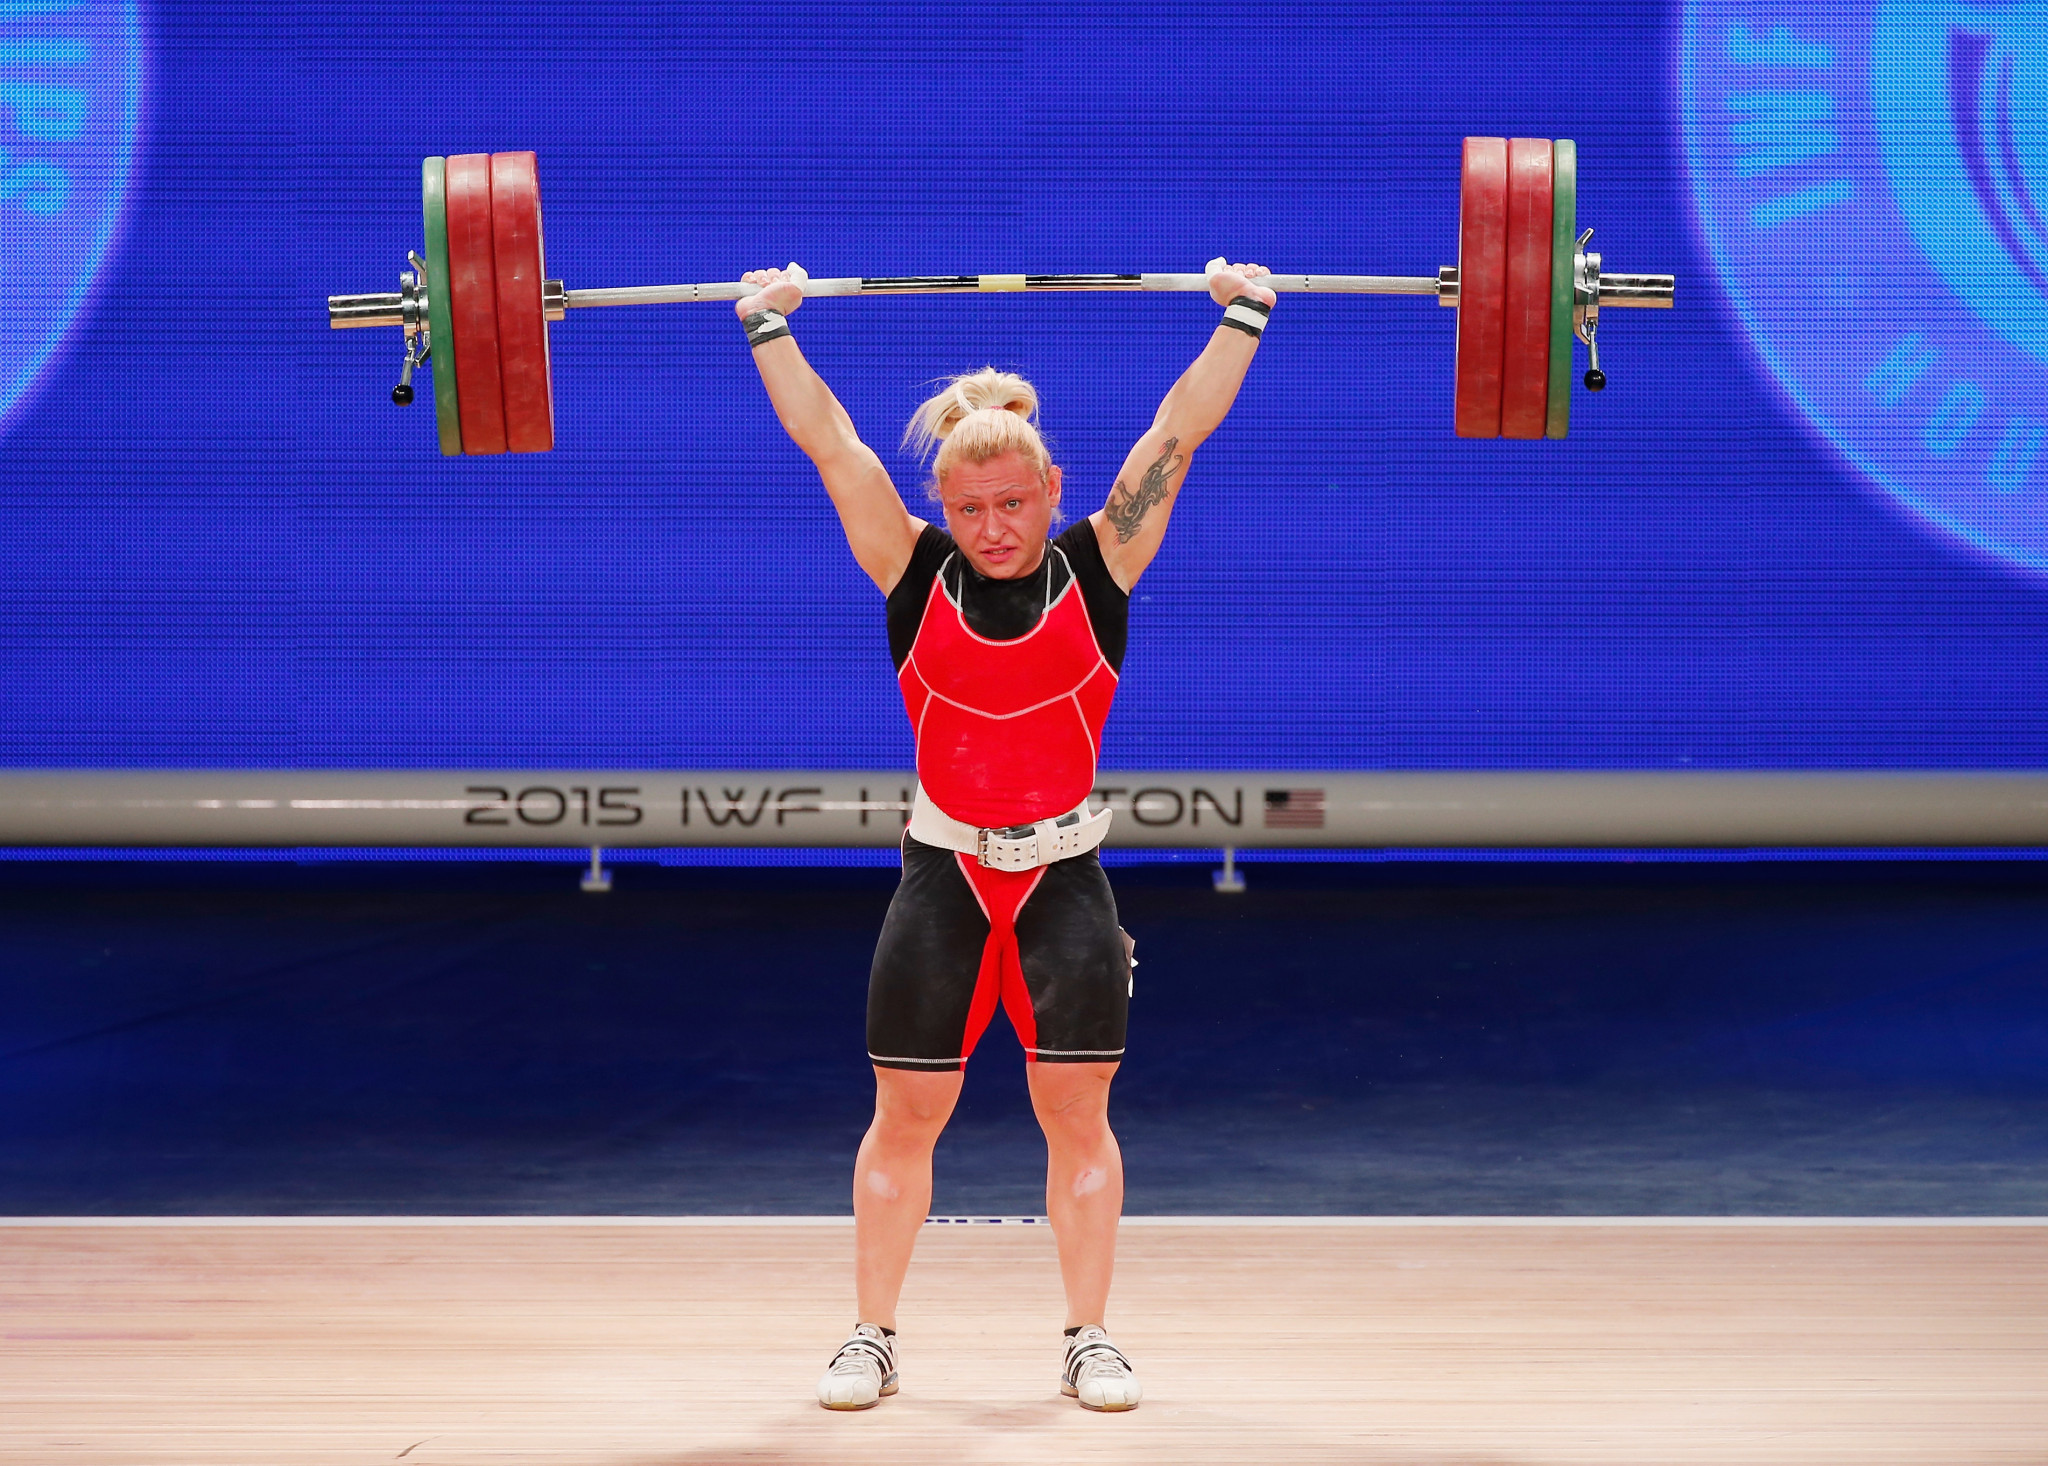 Boyanka Kostova of Azerbaijan won a closely fought women's 59 kilogram title on day three of the European Weightlifting Championships ©Getty Images